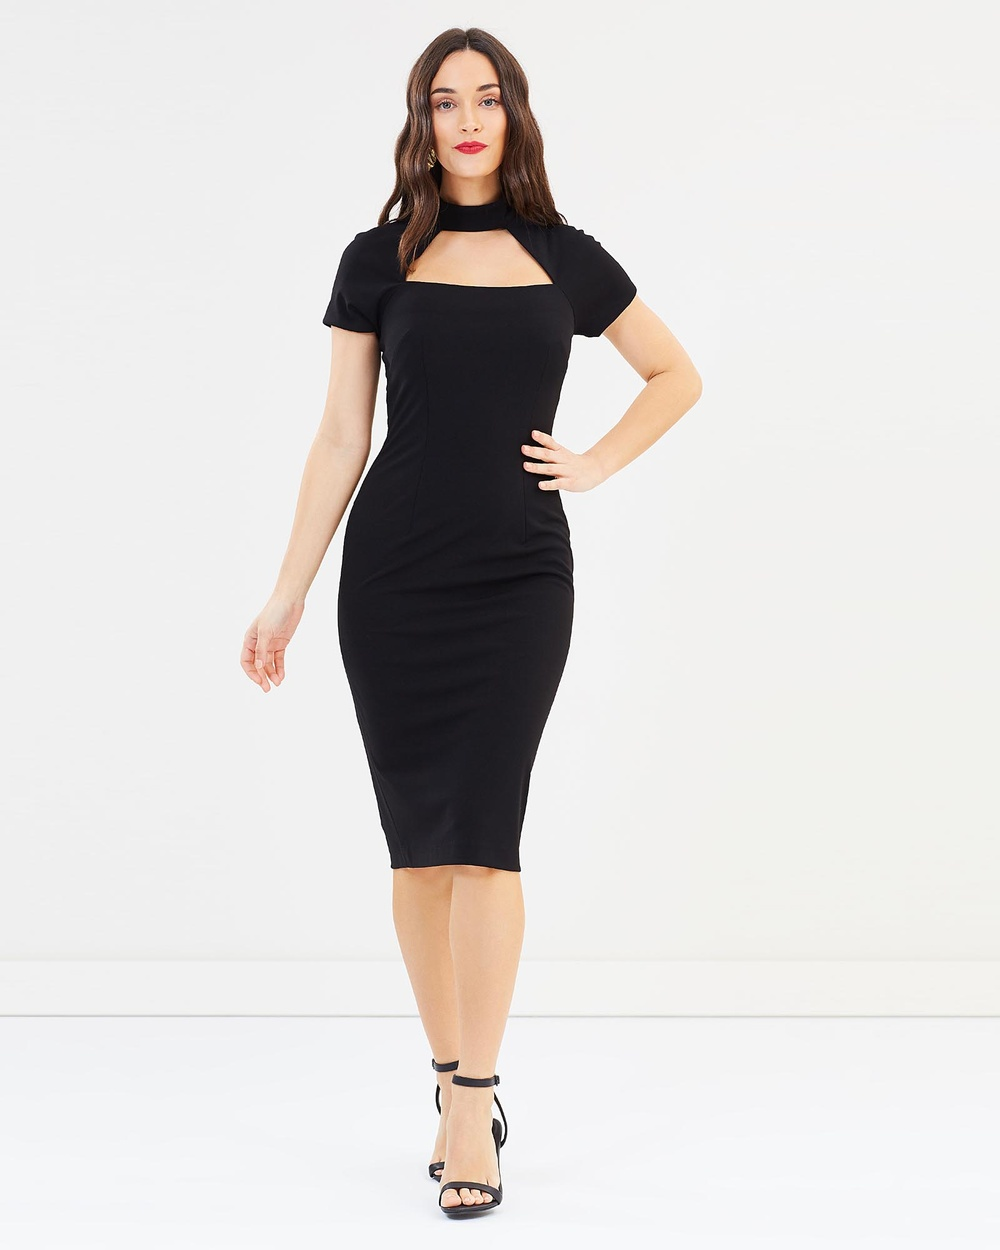 Pink Ruby Jolie Collar Midi Dress Dresses Black Jolie Collar Midi Dress